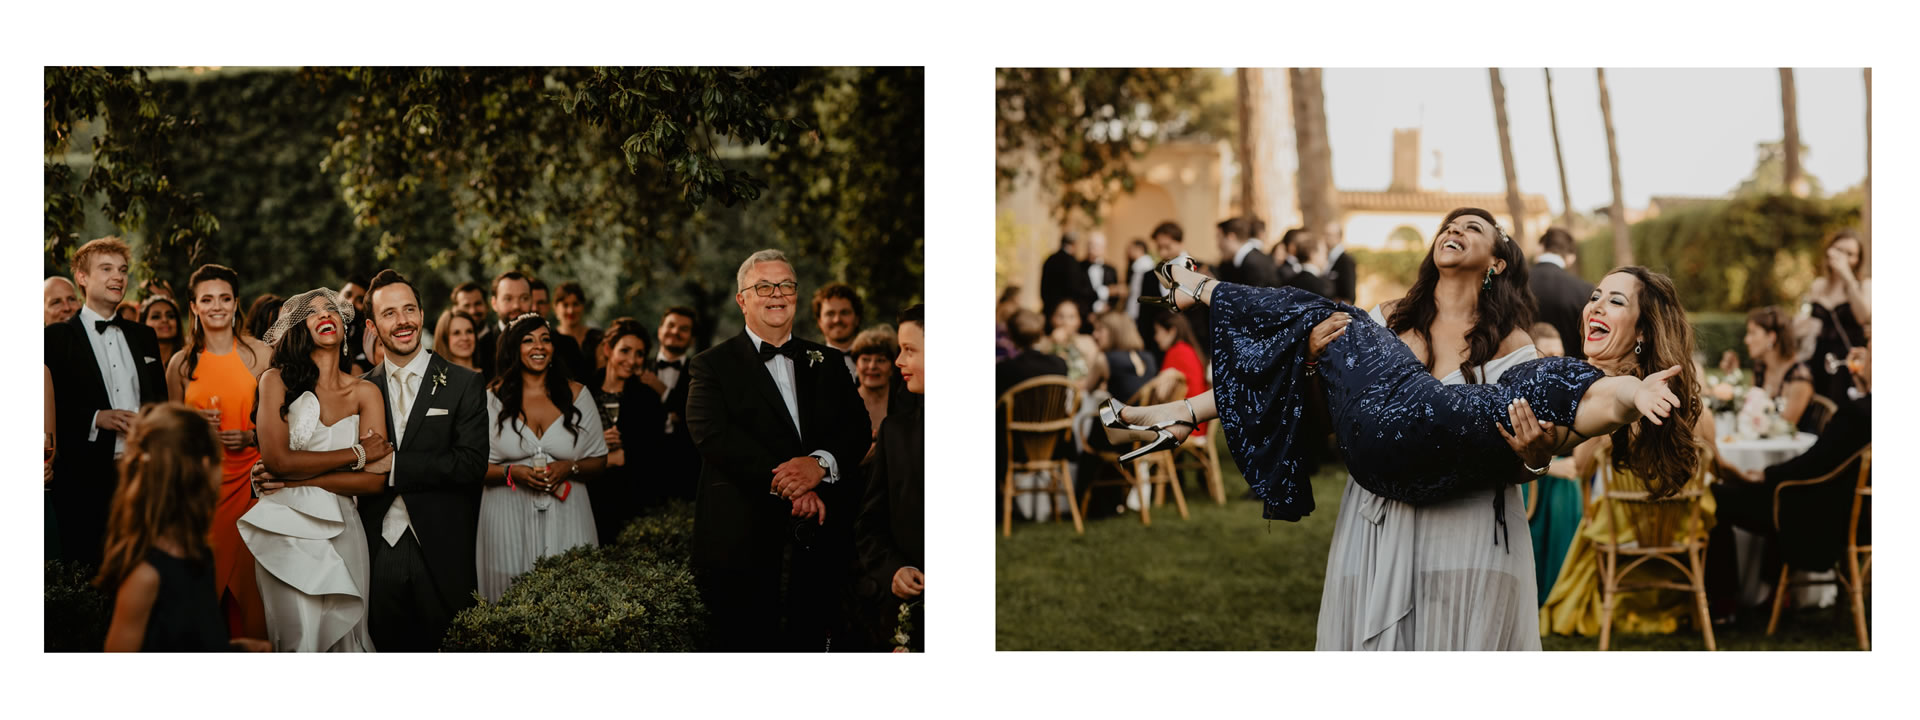 A Love story … from Rome to Harpers' Bazaar - 33 :: A Love story… from Rome to Harper's Bazaar :: Luxury wedding photography - 32 :: A Love story … from Rome to Harpers' Bazaar - 33